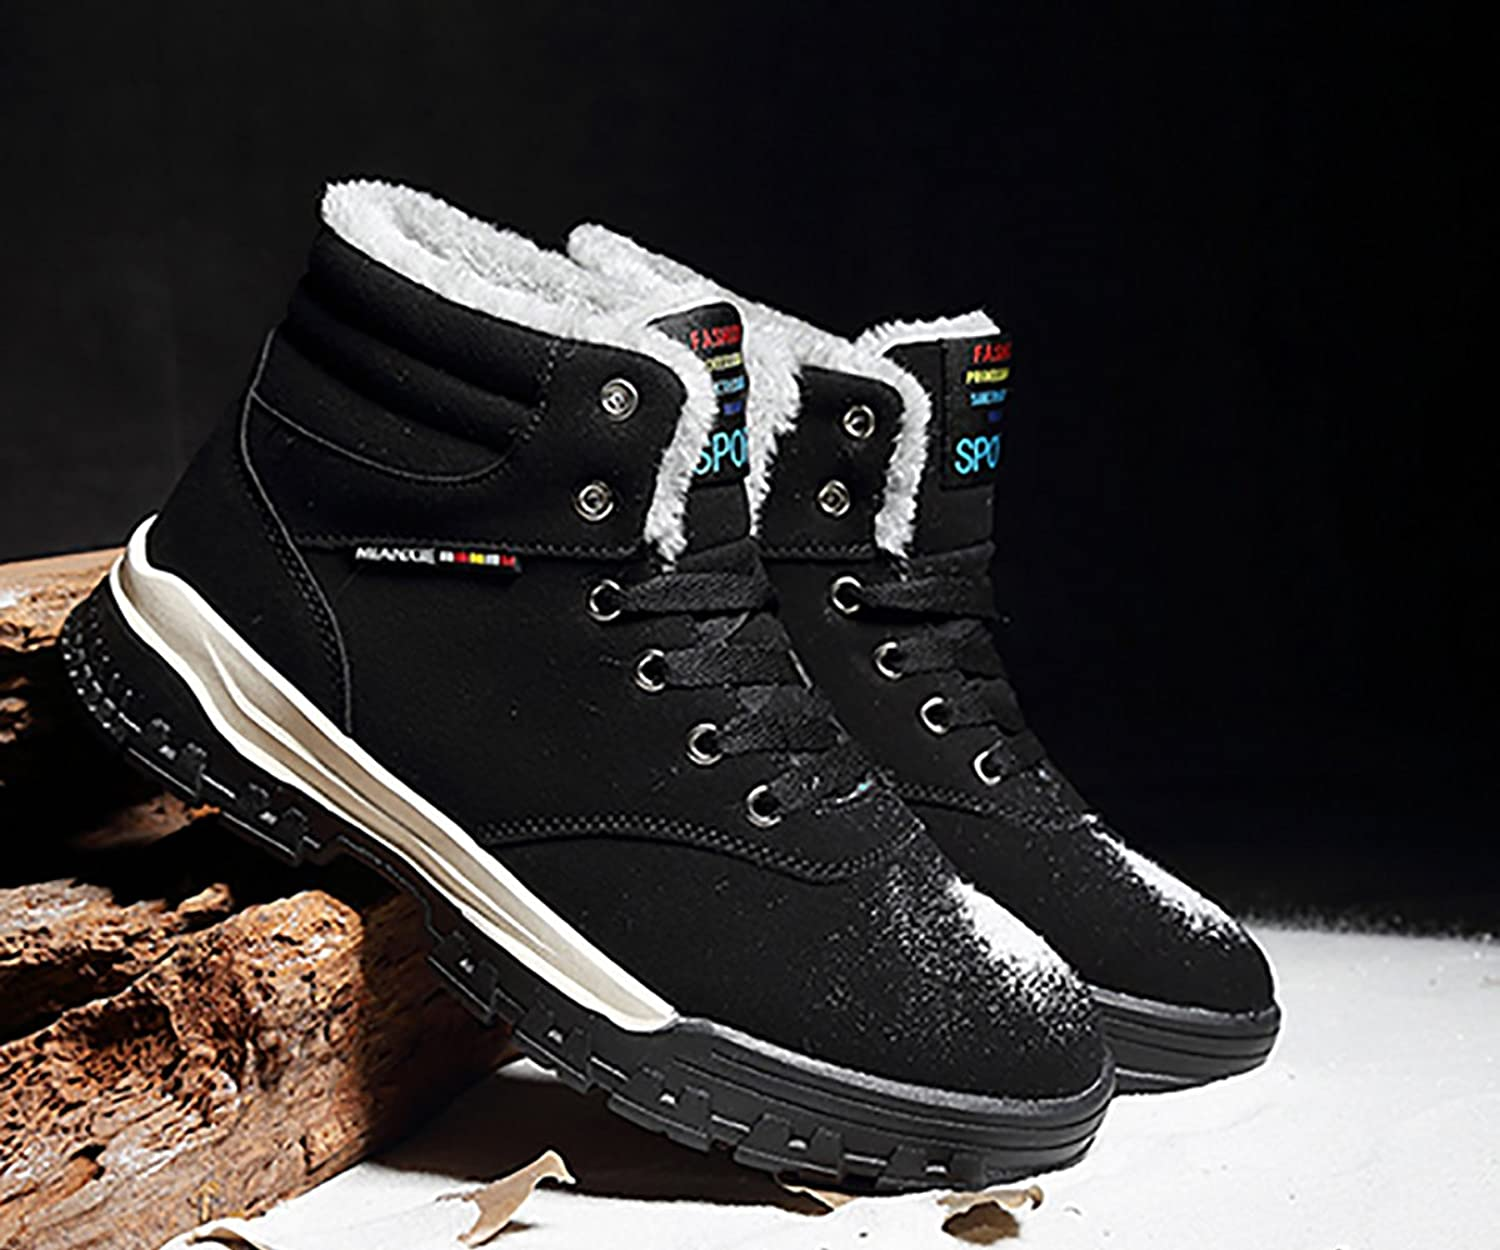 Snow Warm Men Shoes Winter Fur Lining Boots Outdoor Ankle High Top Sneakers  Lace Up Black 45/11 US Men: Amazon.ca: Shoes & Handbags